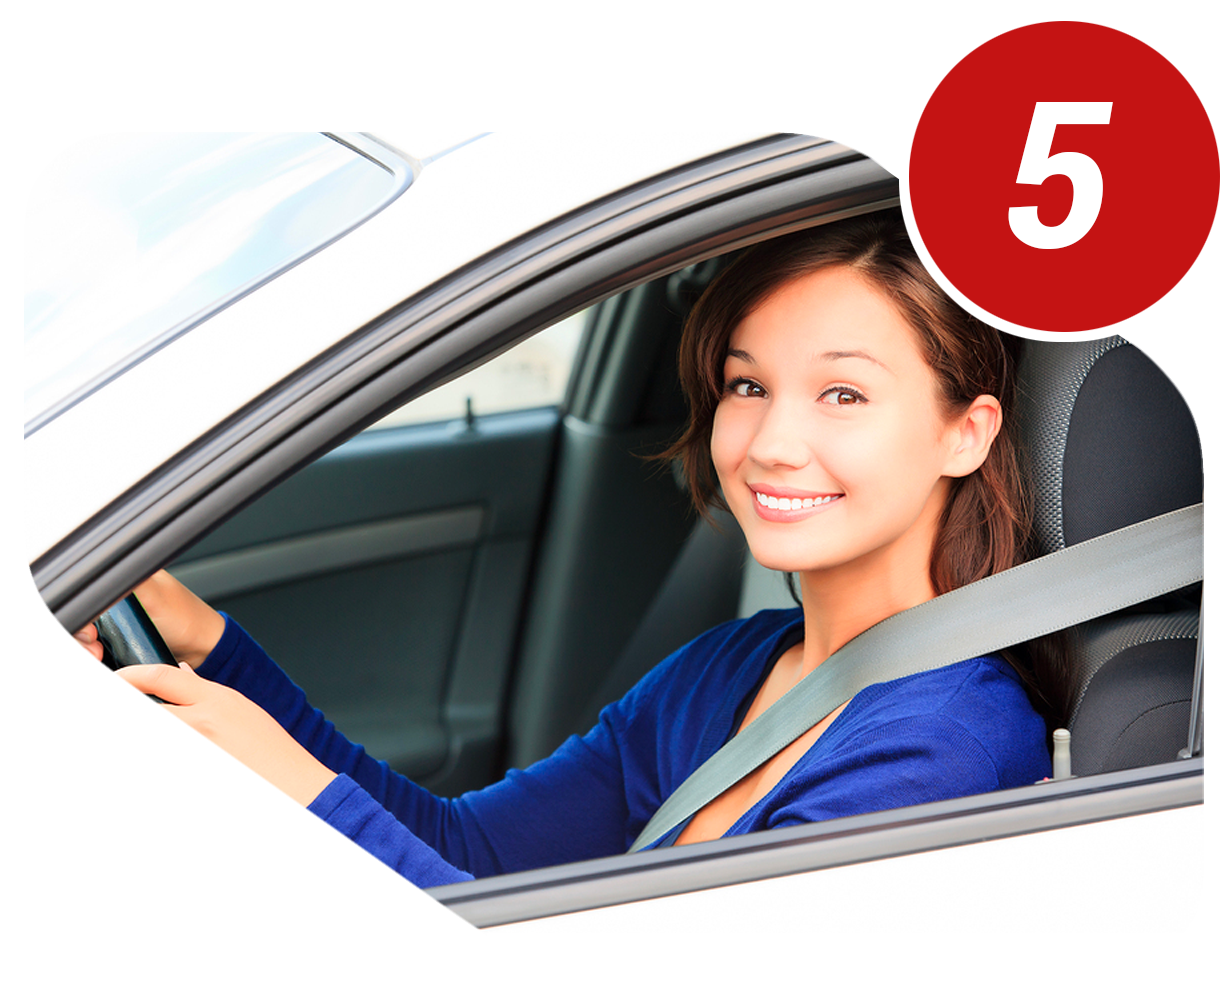 Approved Online Defensive Driving and Approved Online Drivers Ed Courses don't have to be boring. Take care of these the easy, convenient way online!